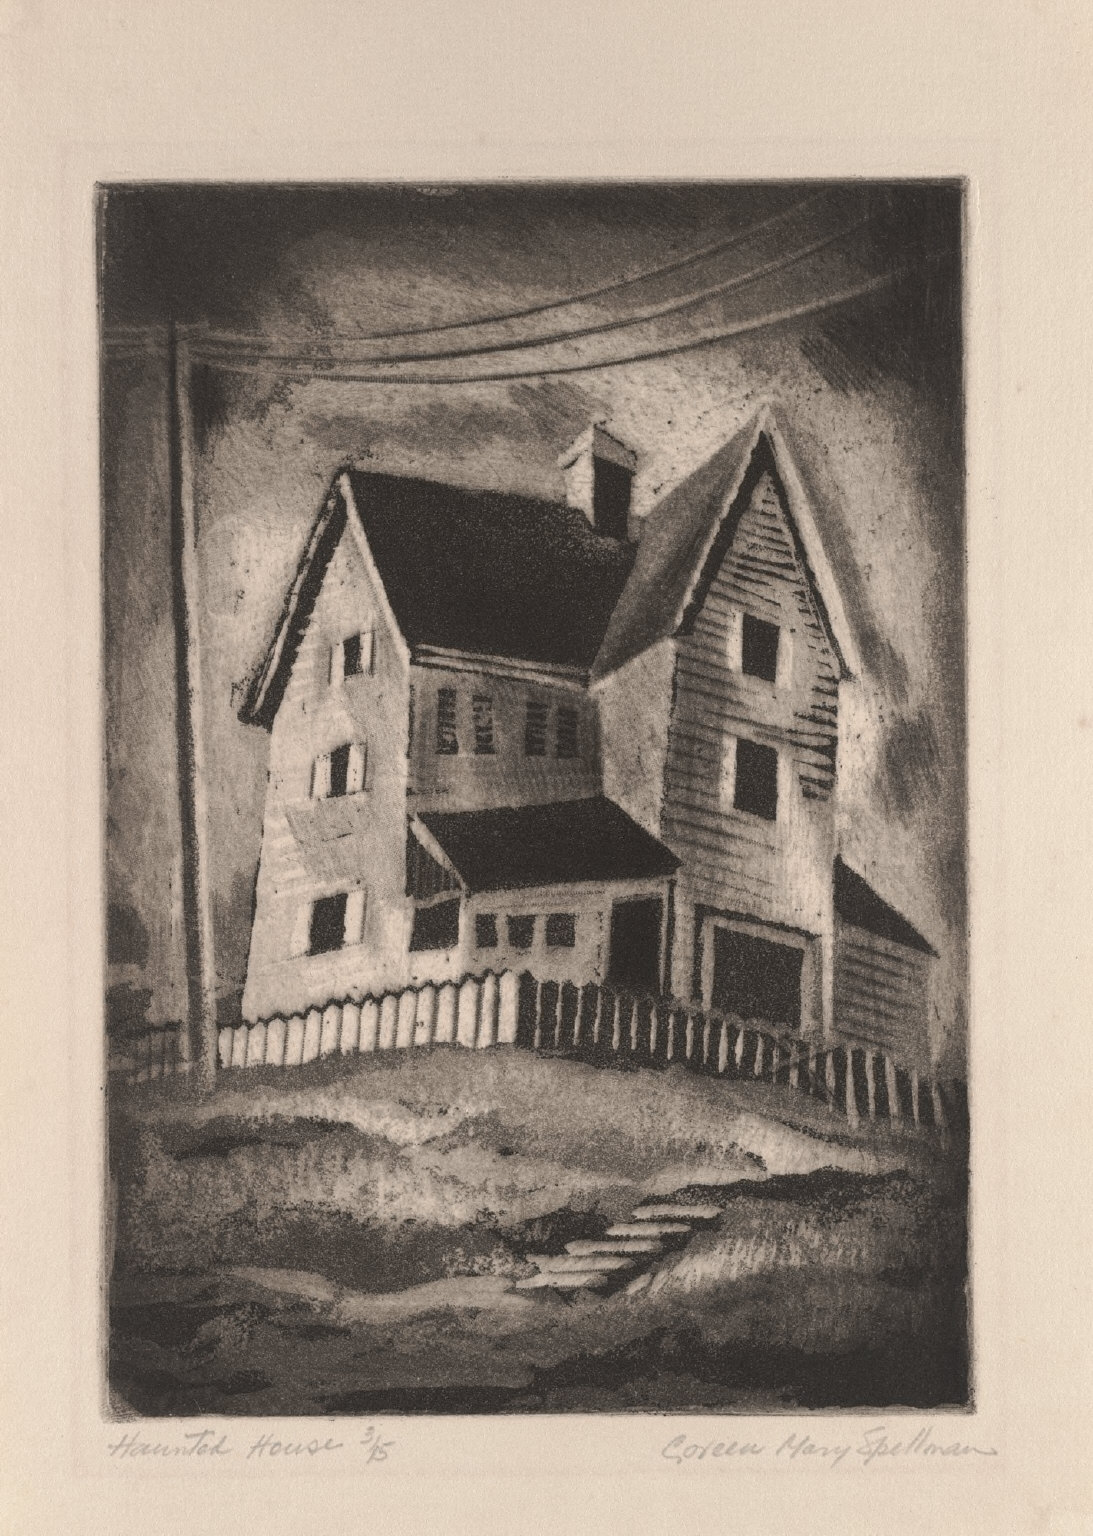 Haunted House/Old House